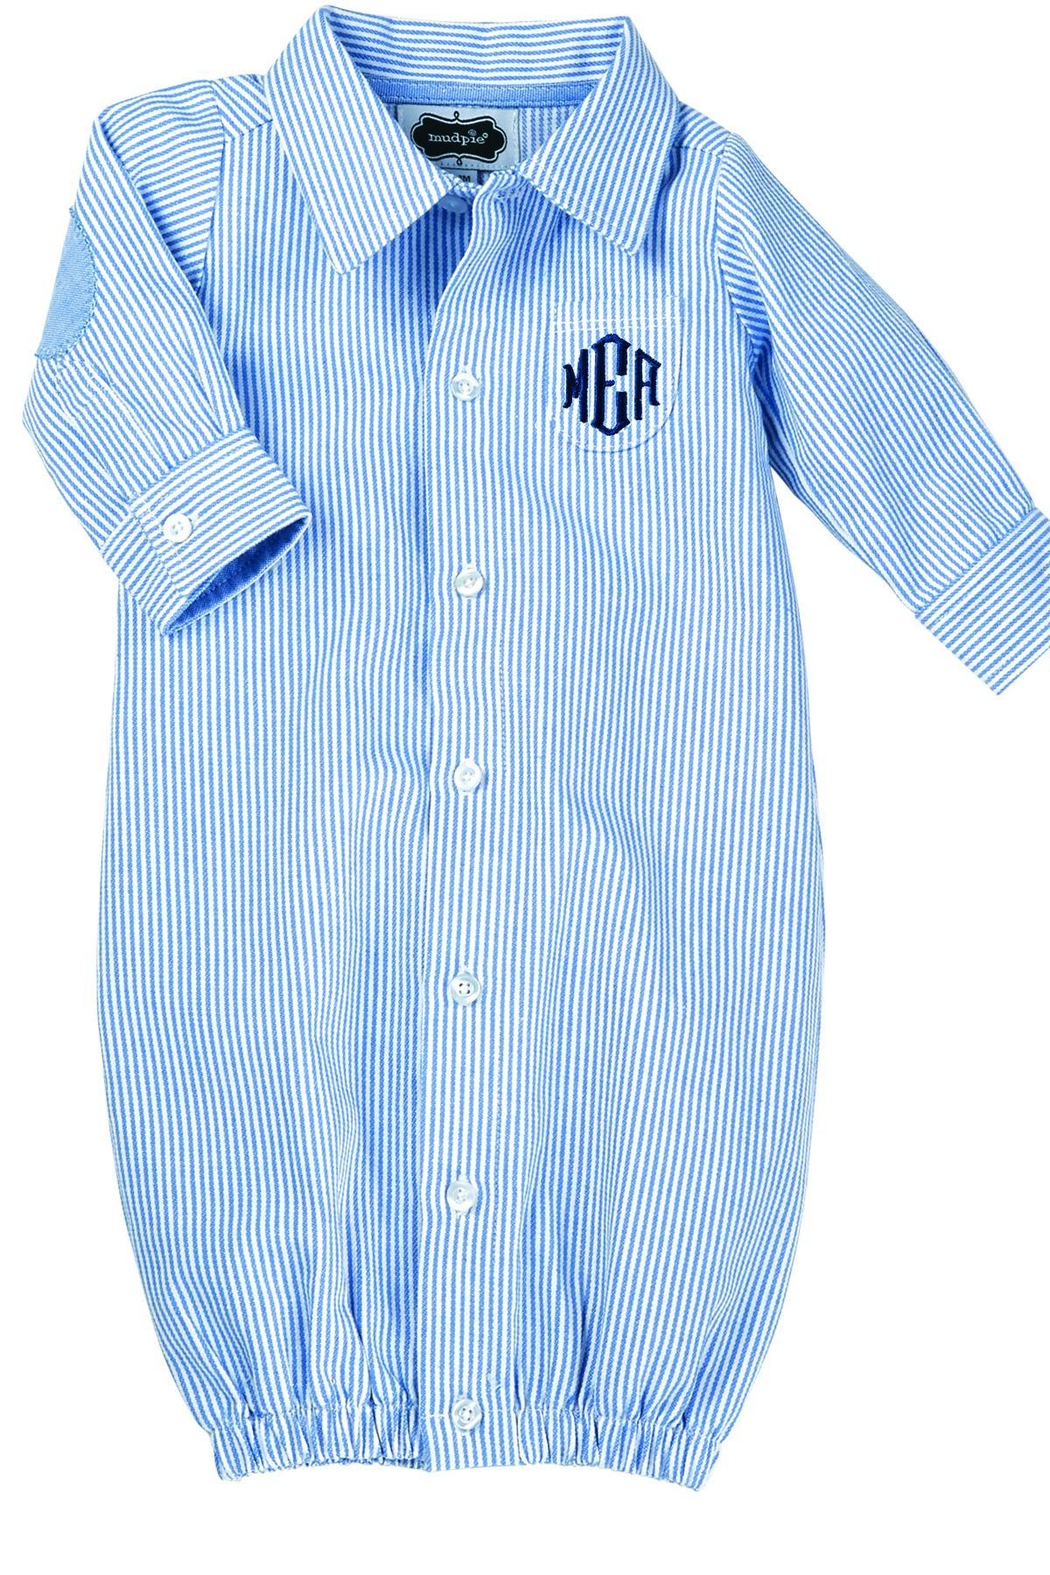 Mud Pie Monogrammed Oxford Gown From Florida By Leisa Lovely Designs